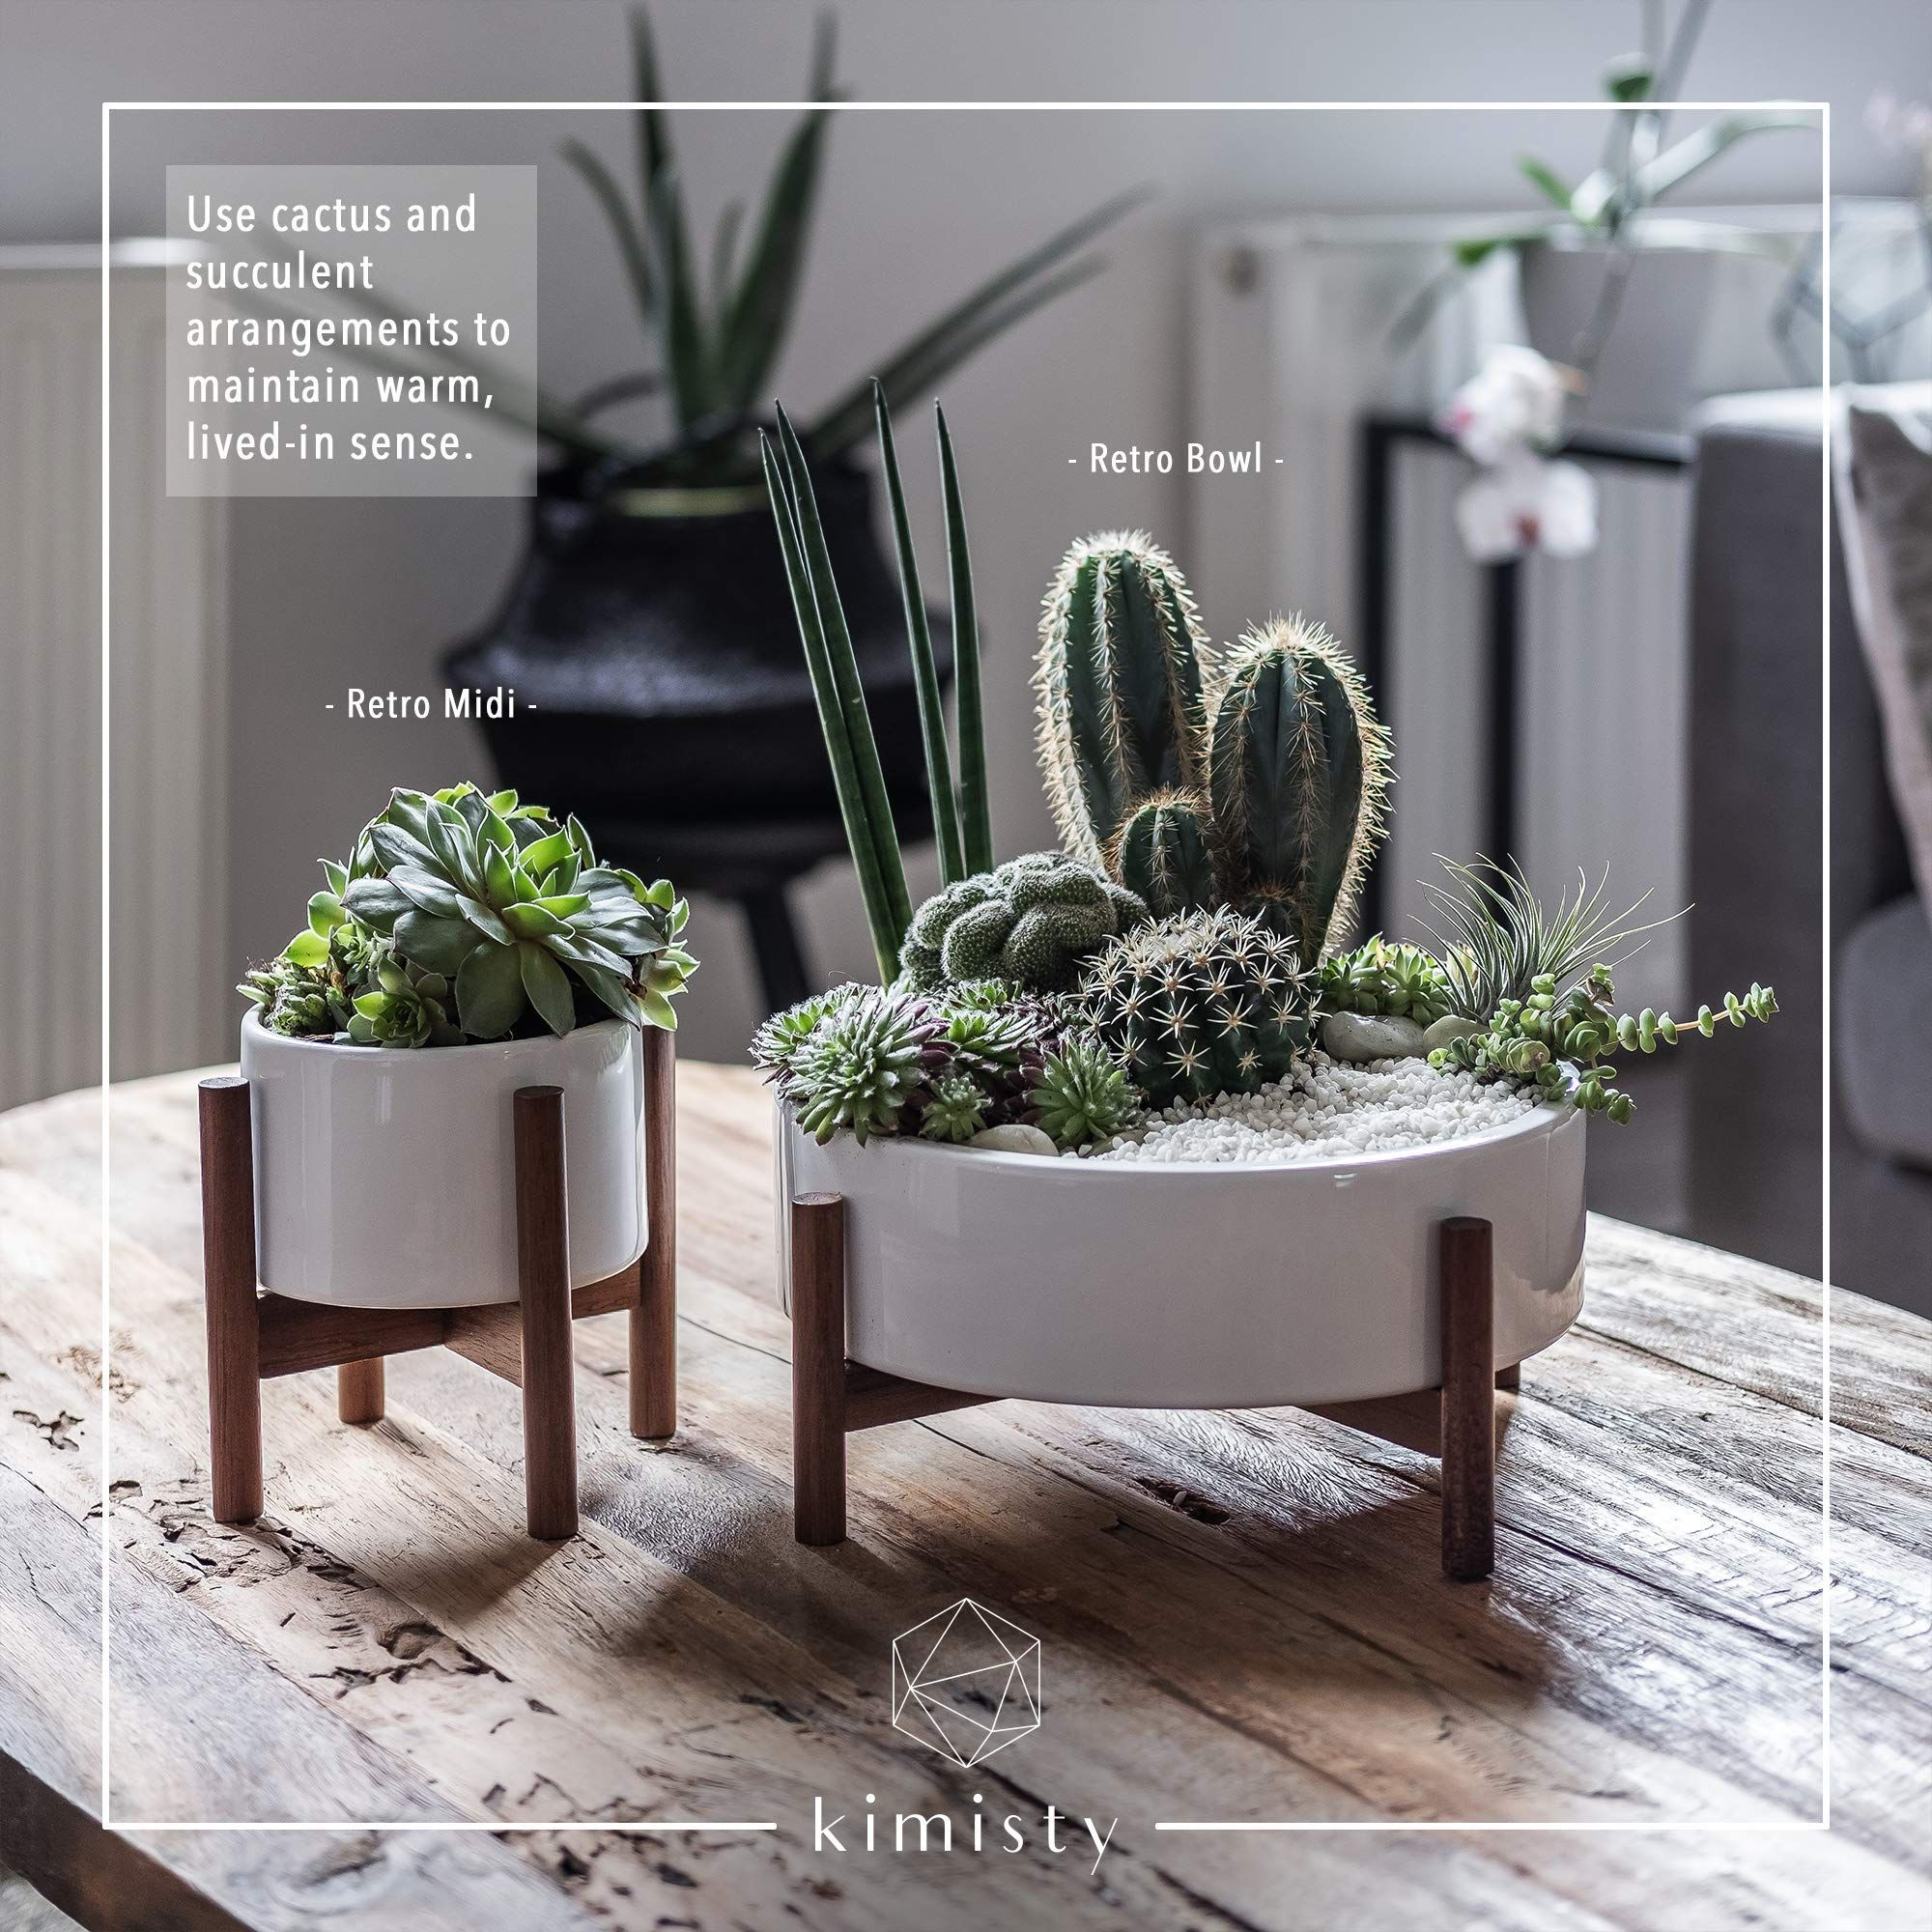 Mid Century Large Round Succulent Planter Bowl 10 Inch White Ceramic Pot With Wood Stand Plant Stands With Plant Decor Indoor House Plants Decor Plant Decor